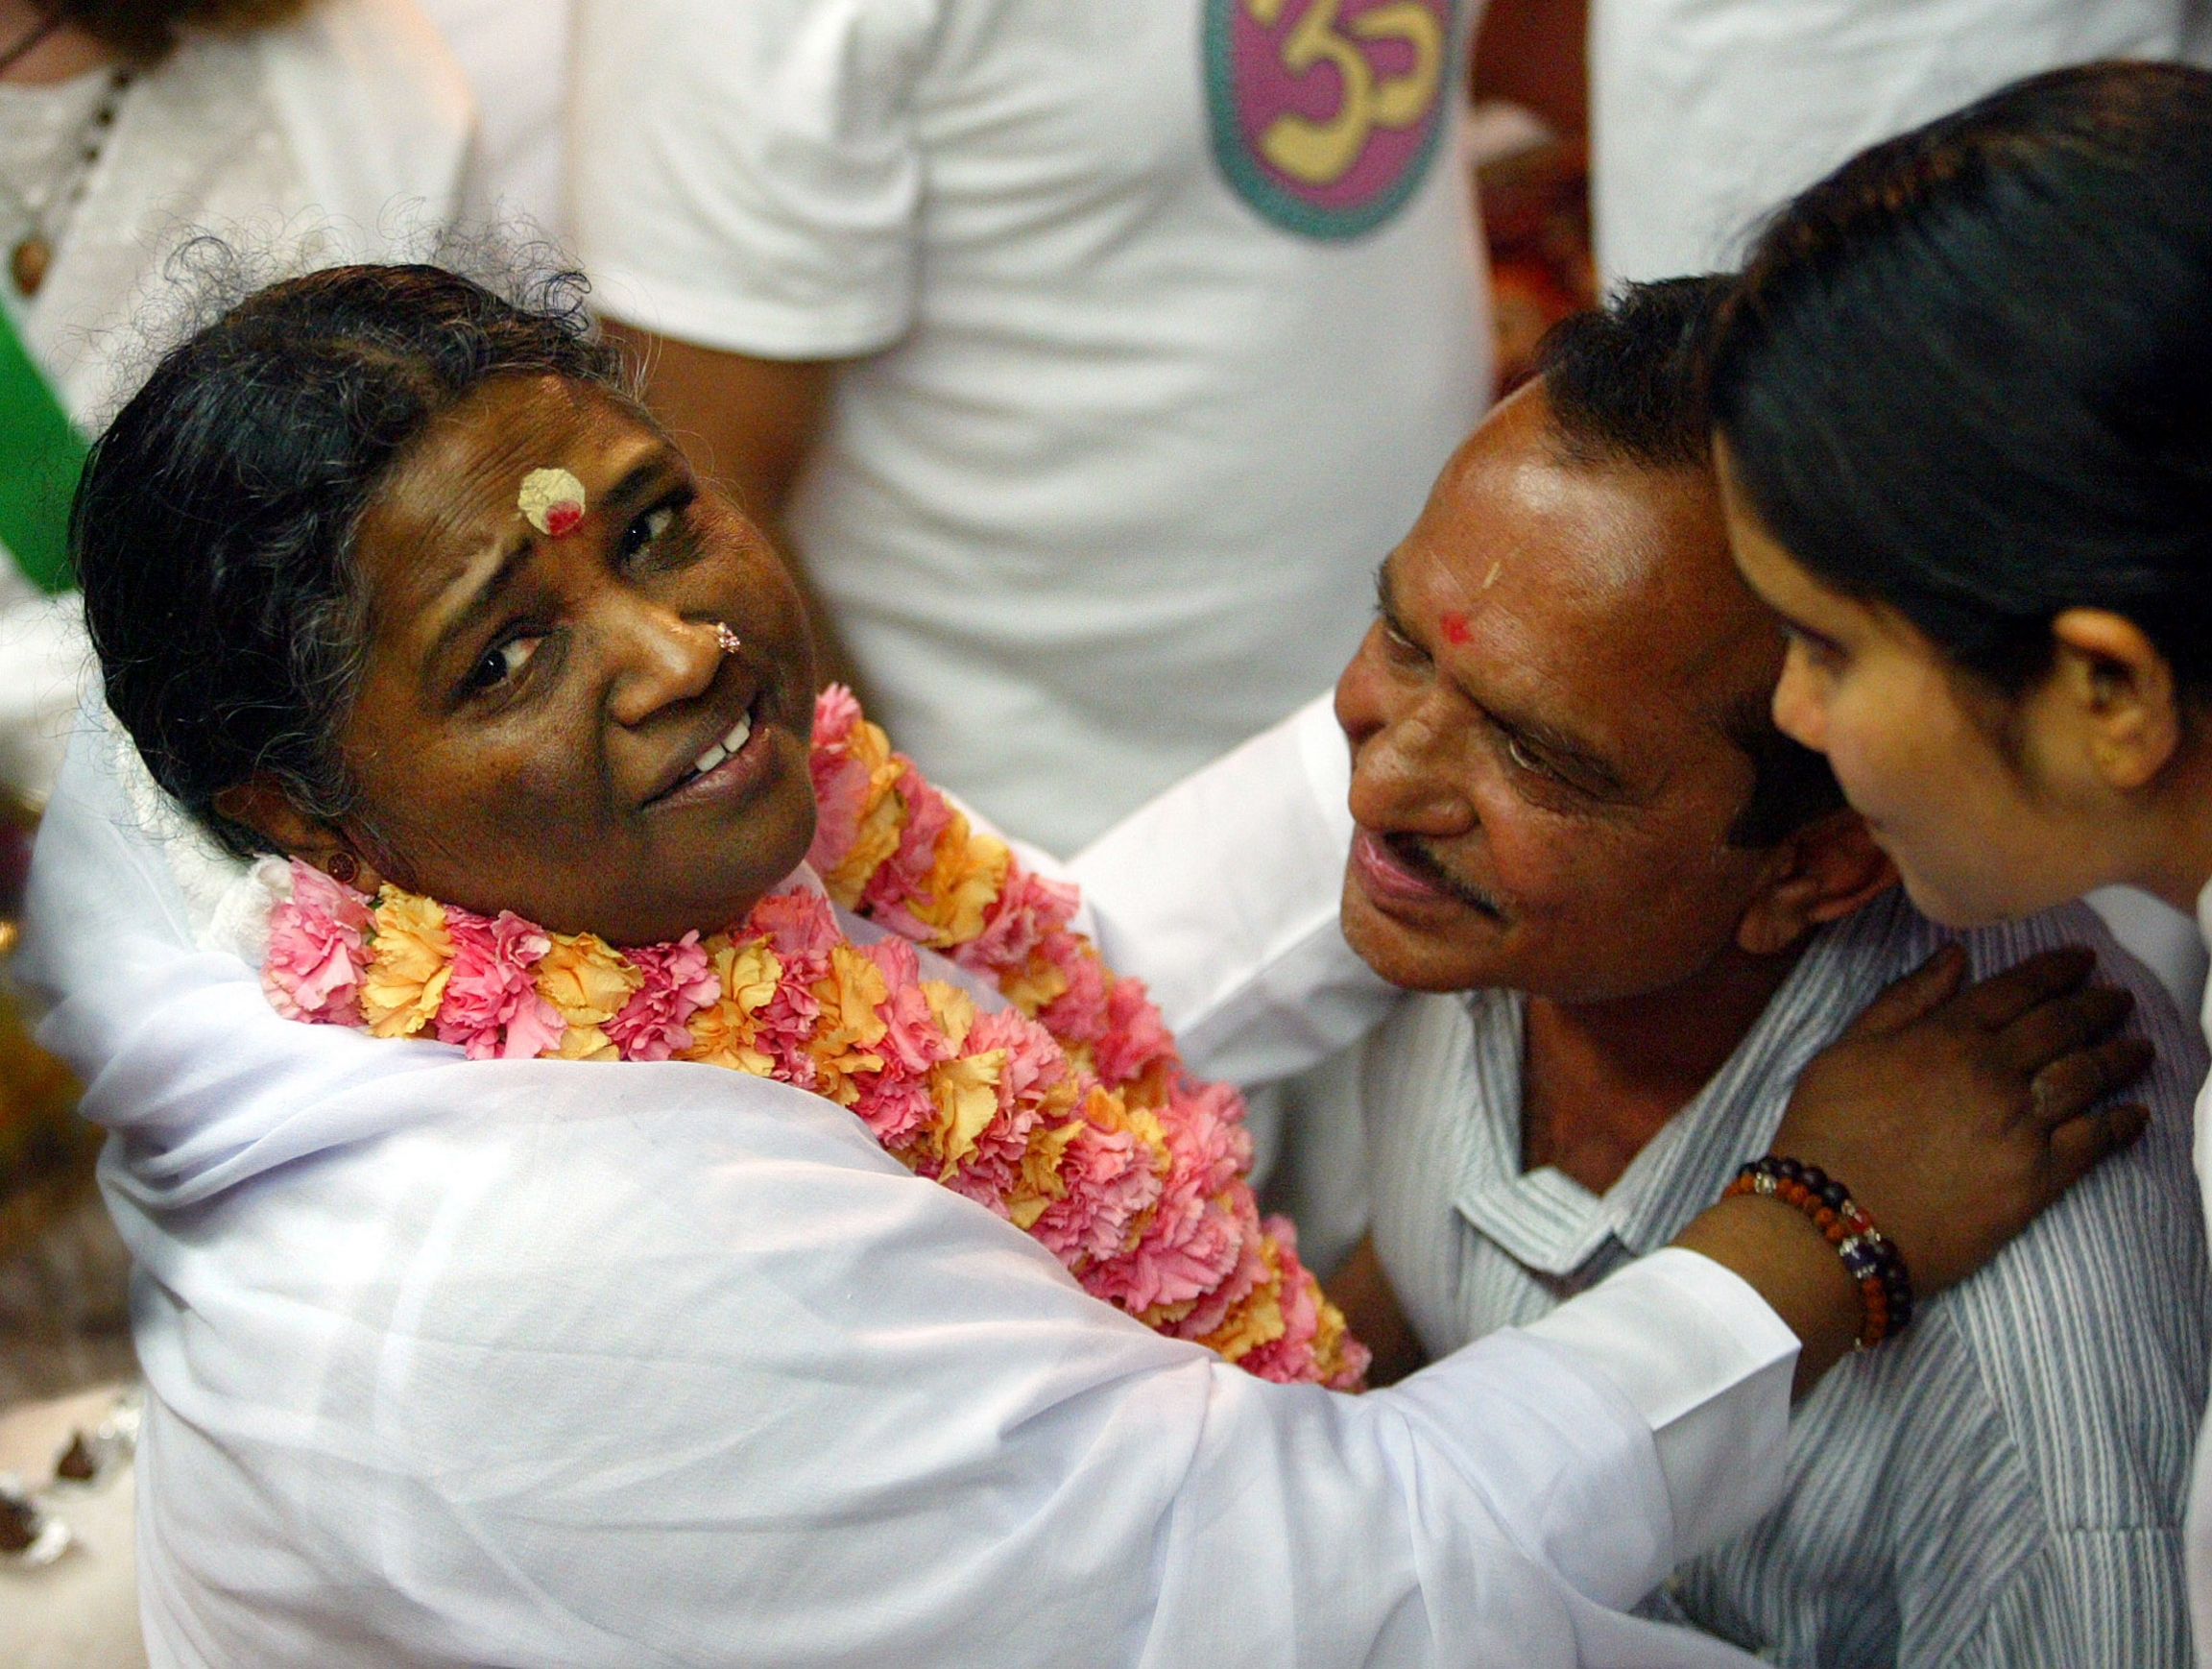 A man gets a hug from Amma.